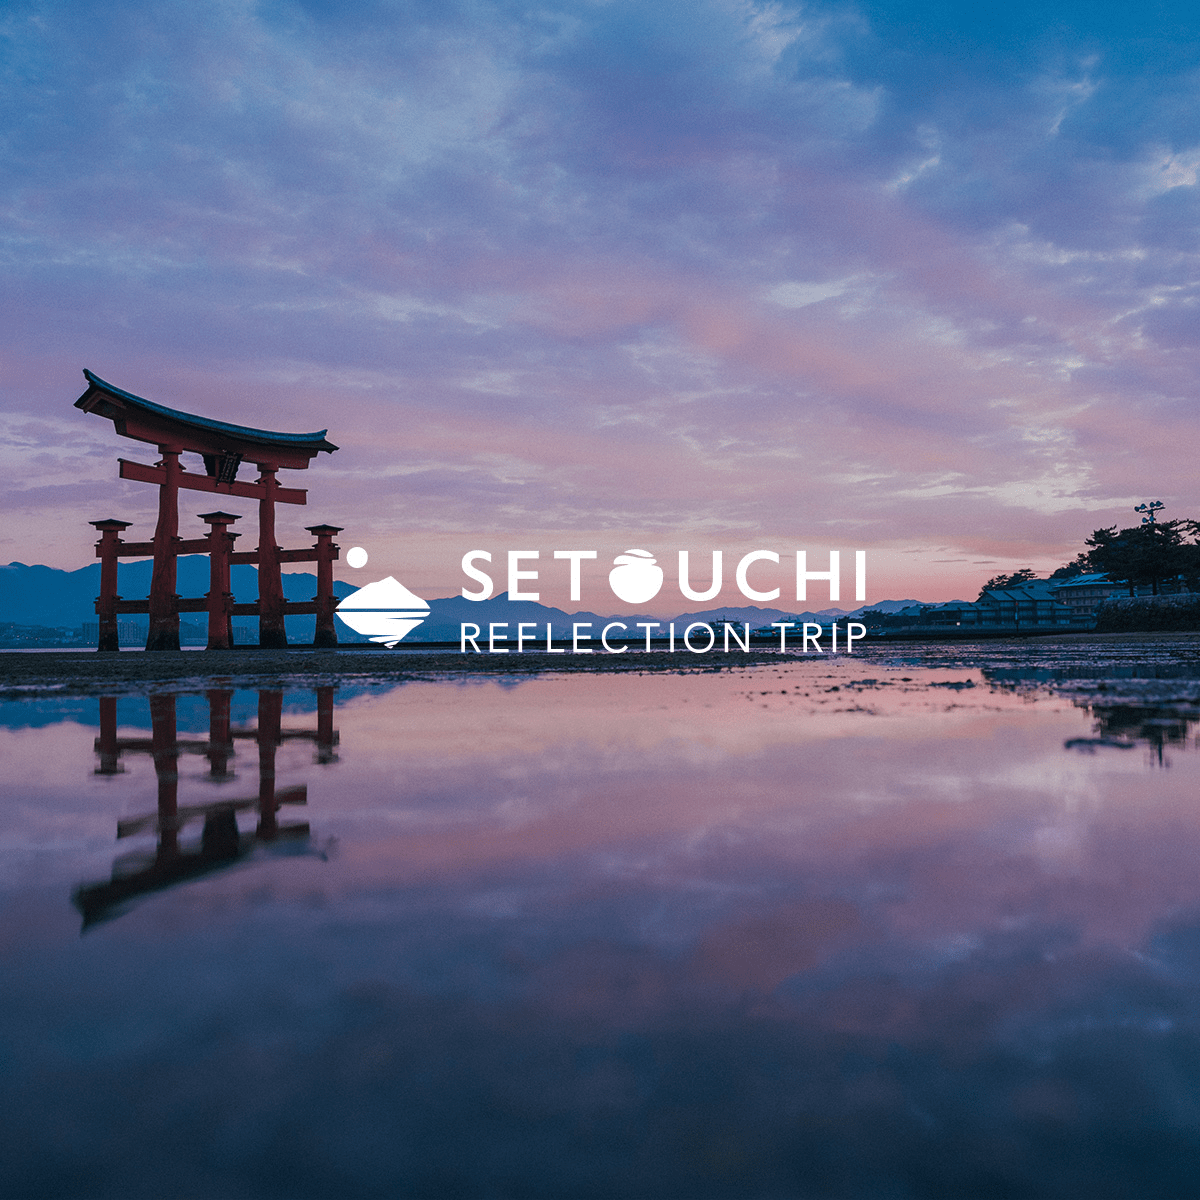 Setouchi Reflection Trip The Official Travel Guide Of Setouchi Region